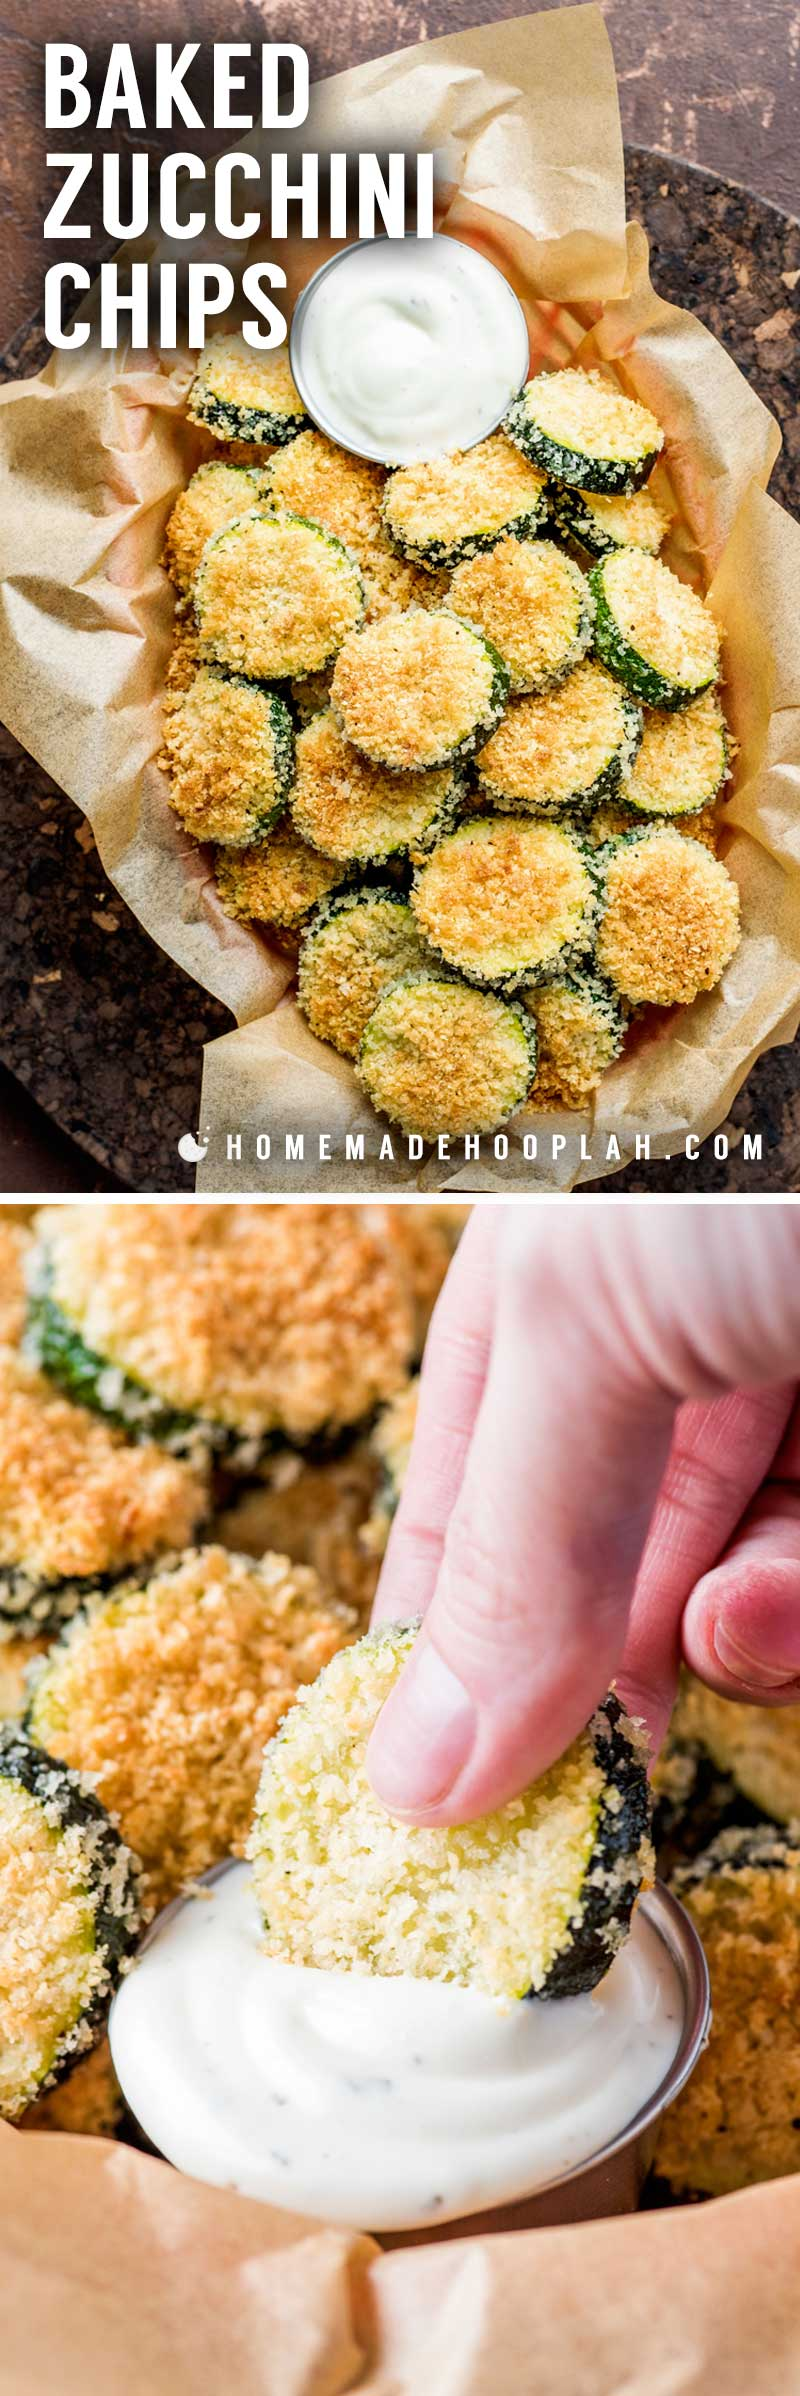 Baked Zucchini Chips! These tender baked zucchinis are coated in a simple parmesan panko breading and are perfect for a fun appetizer or easy snack. Plus, it's easy to customize this recipe with a few herbs or your favorite dip! | HomemadeHooplah.com